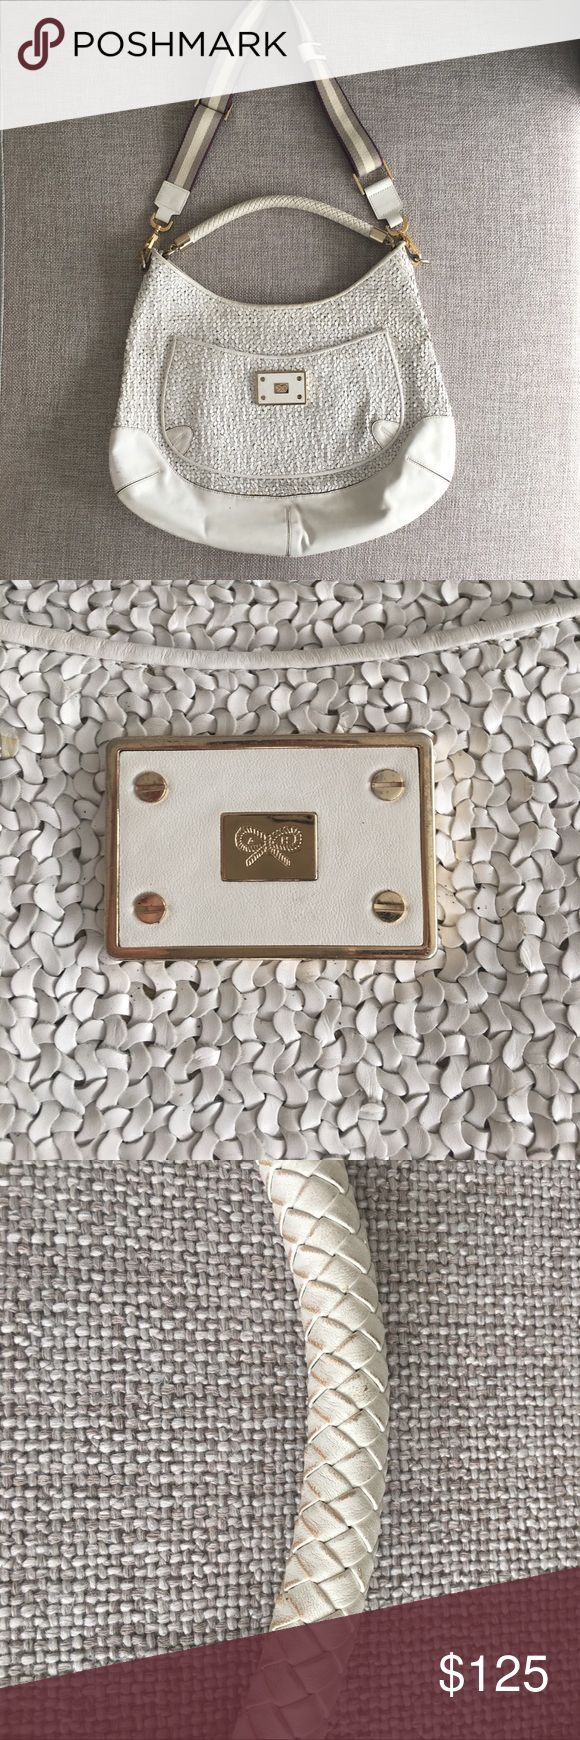 Authentic Anya Hindmarch purse Anya Hindmarch large White Leather Woven Shoulder Bag with additional strap. Gently used with some scuffs and markings. Authentic markings on handbag Anya Hindmarch Bags Shoulder Bags